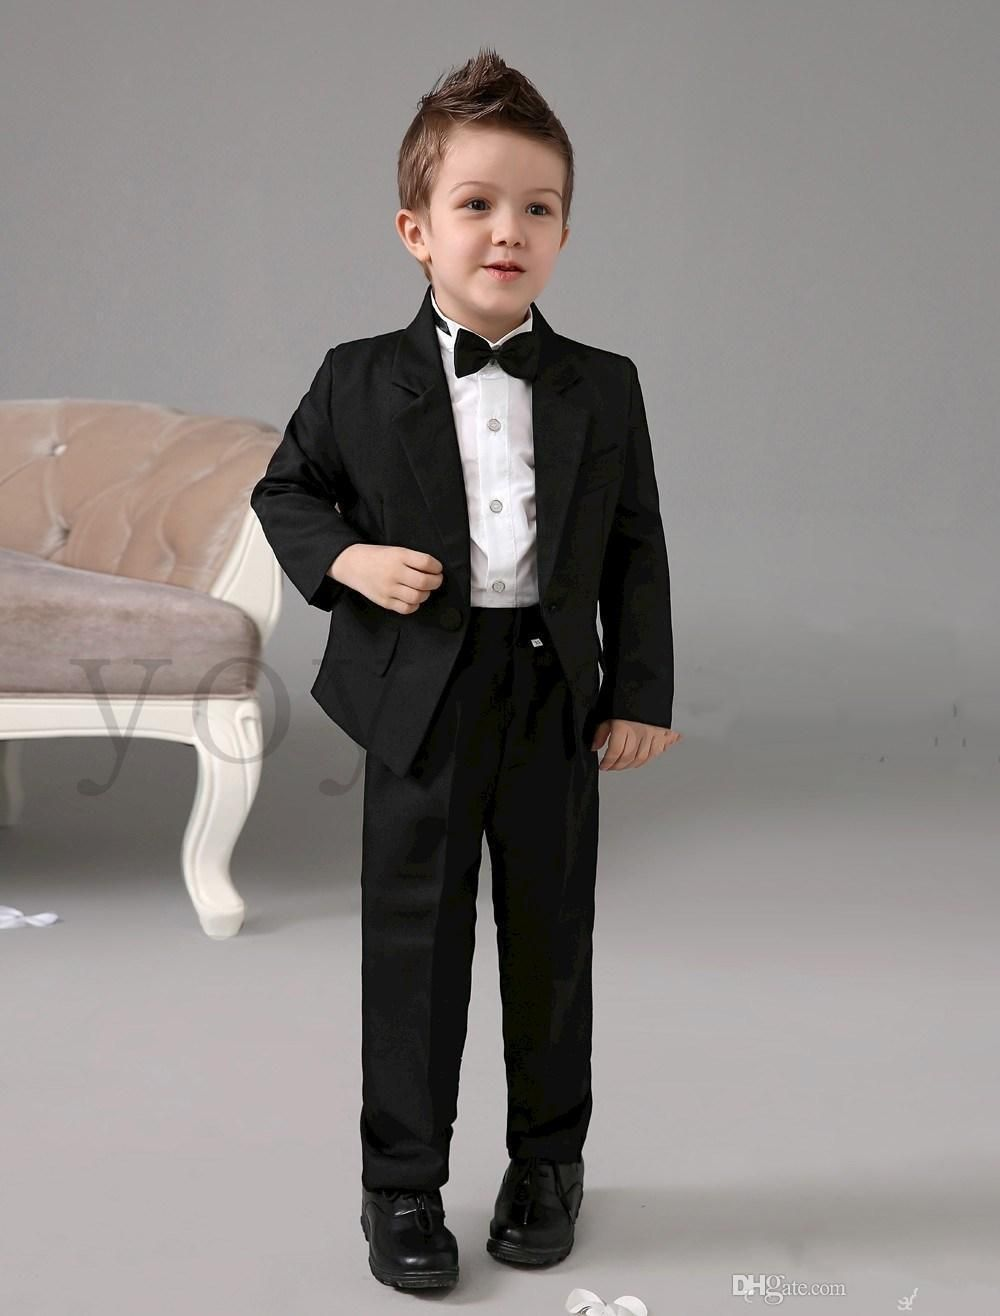 Boys Tuxedos Baby Toddler, Children's Tuxedos Kids Tuxedos. Looking for tuxedos for your kids for a wedding? Need to dress your kids up for any formal event? At tuxedosonline. com we have high quality tuxedos for children of any size, from toddler to teens. The reason the peak was the tuxedo is notch lapel was the suit. You're used to.